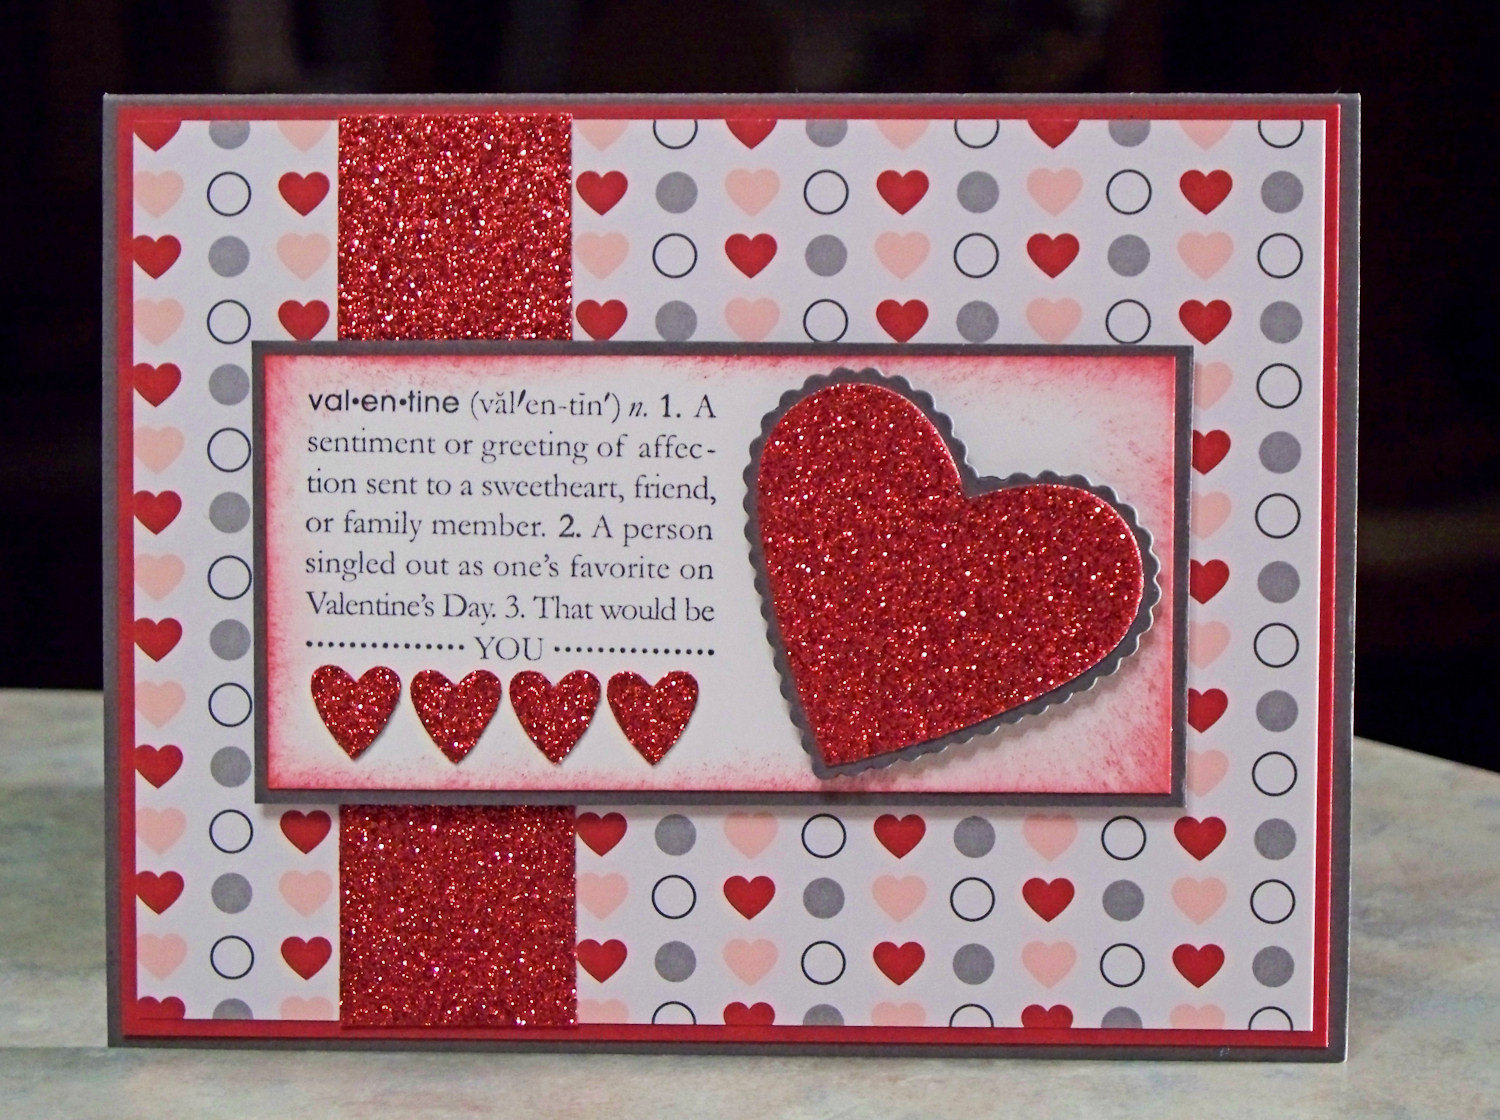 Handmade Valentine Cards – What to Write on Valentines Card for Your Boyfriend